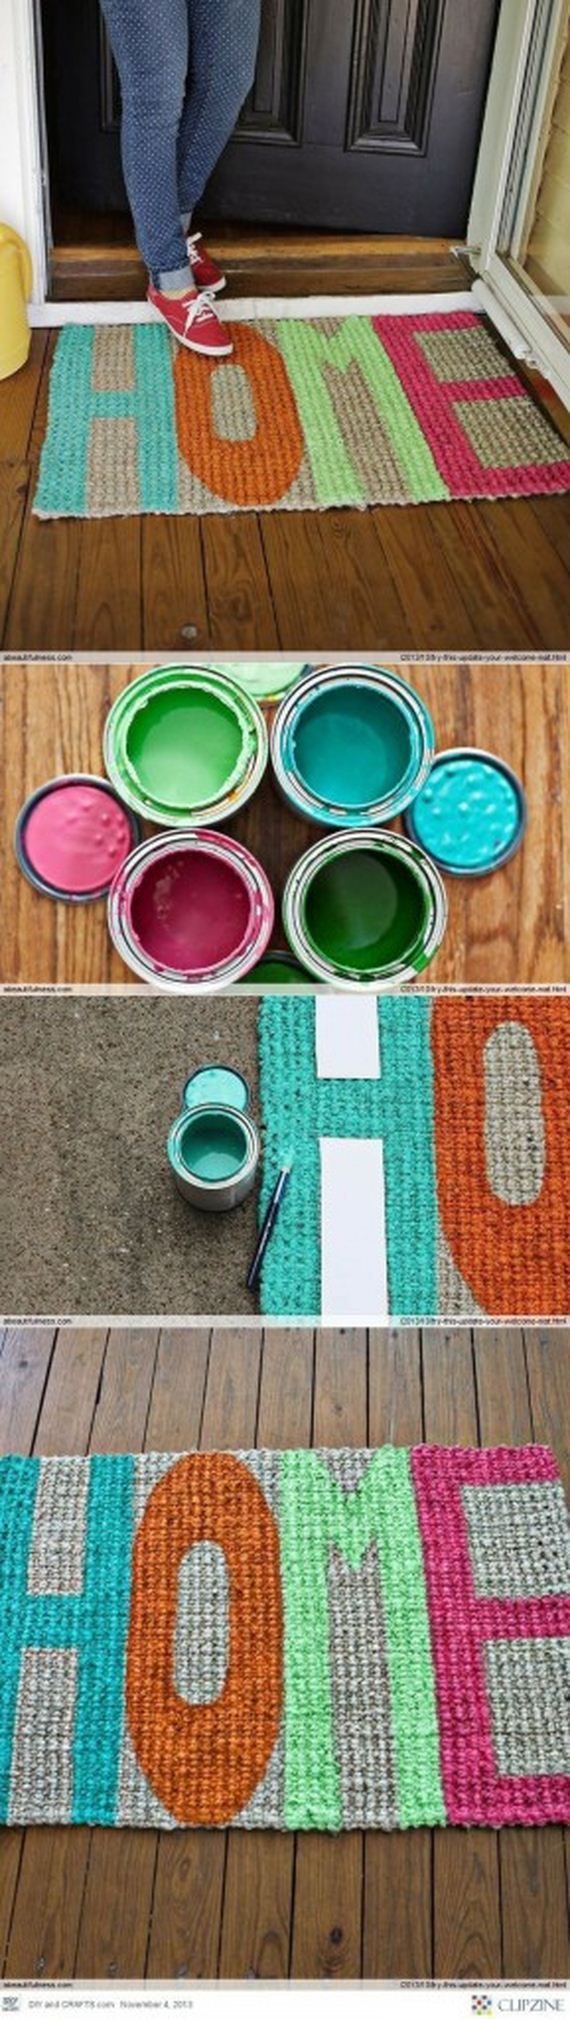 19-DIY-SPRING-PROJECTS